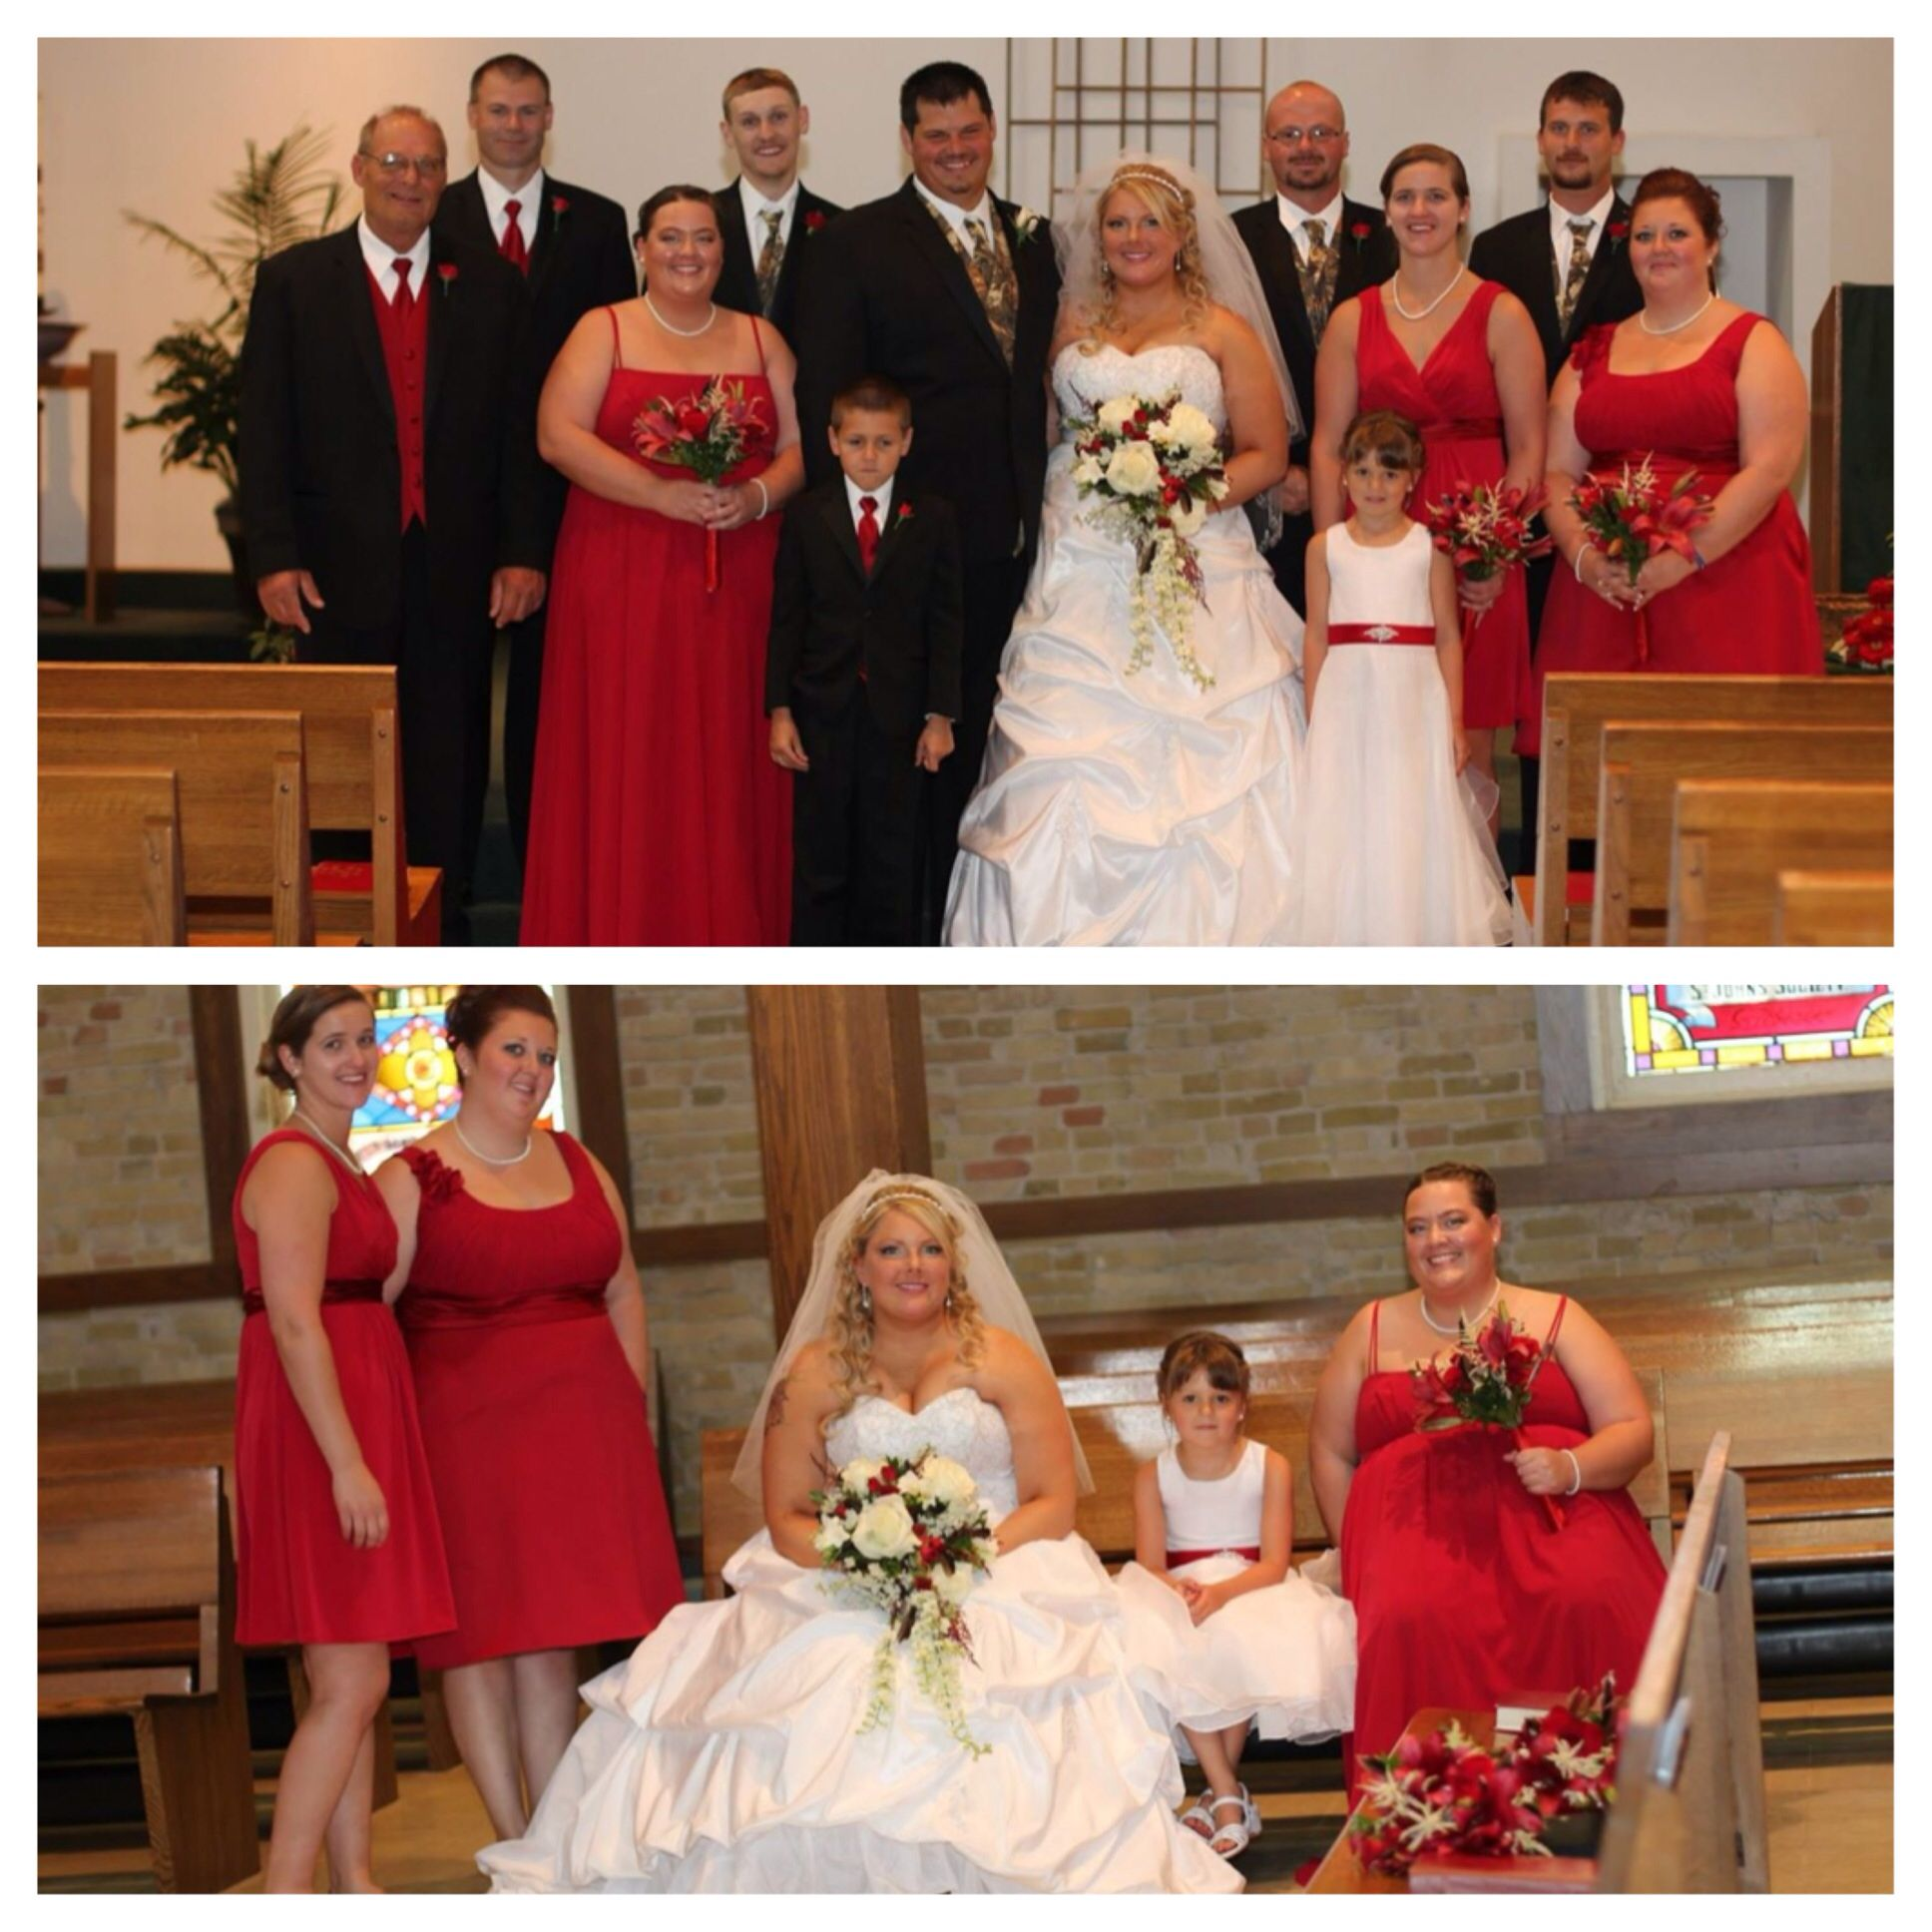 Red and camo wedding party pictures | Our beautiful, elegant ...